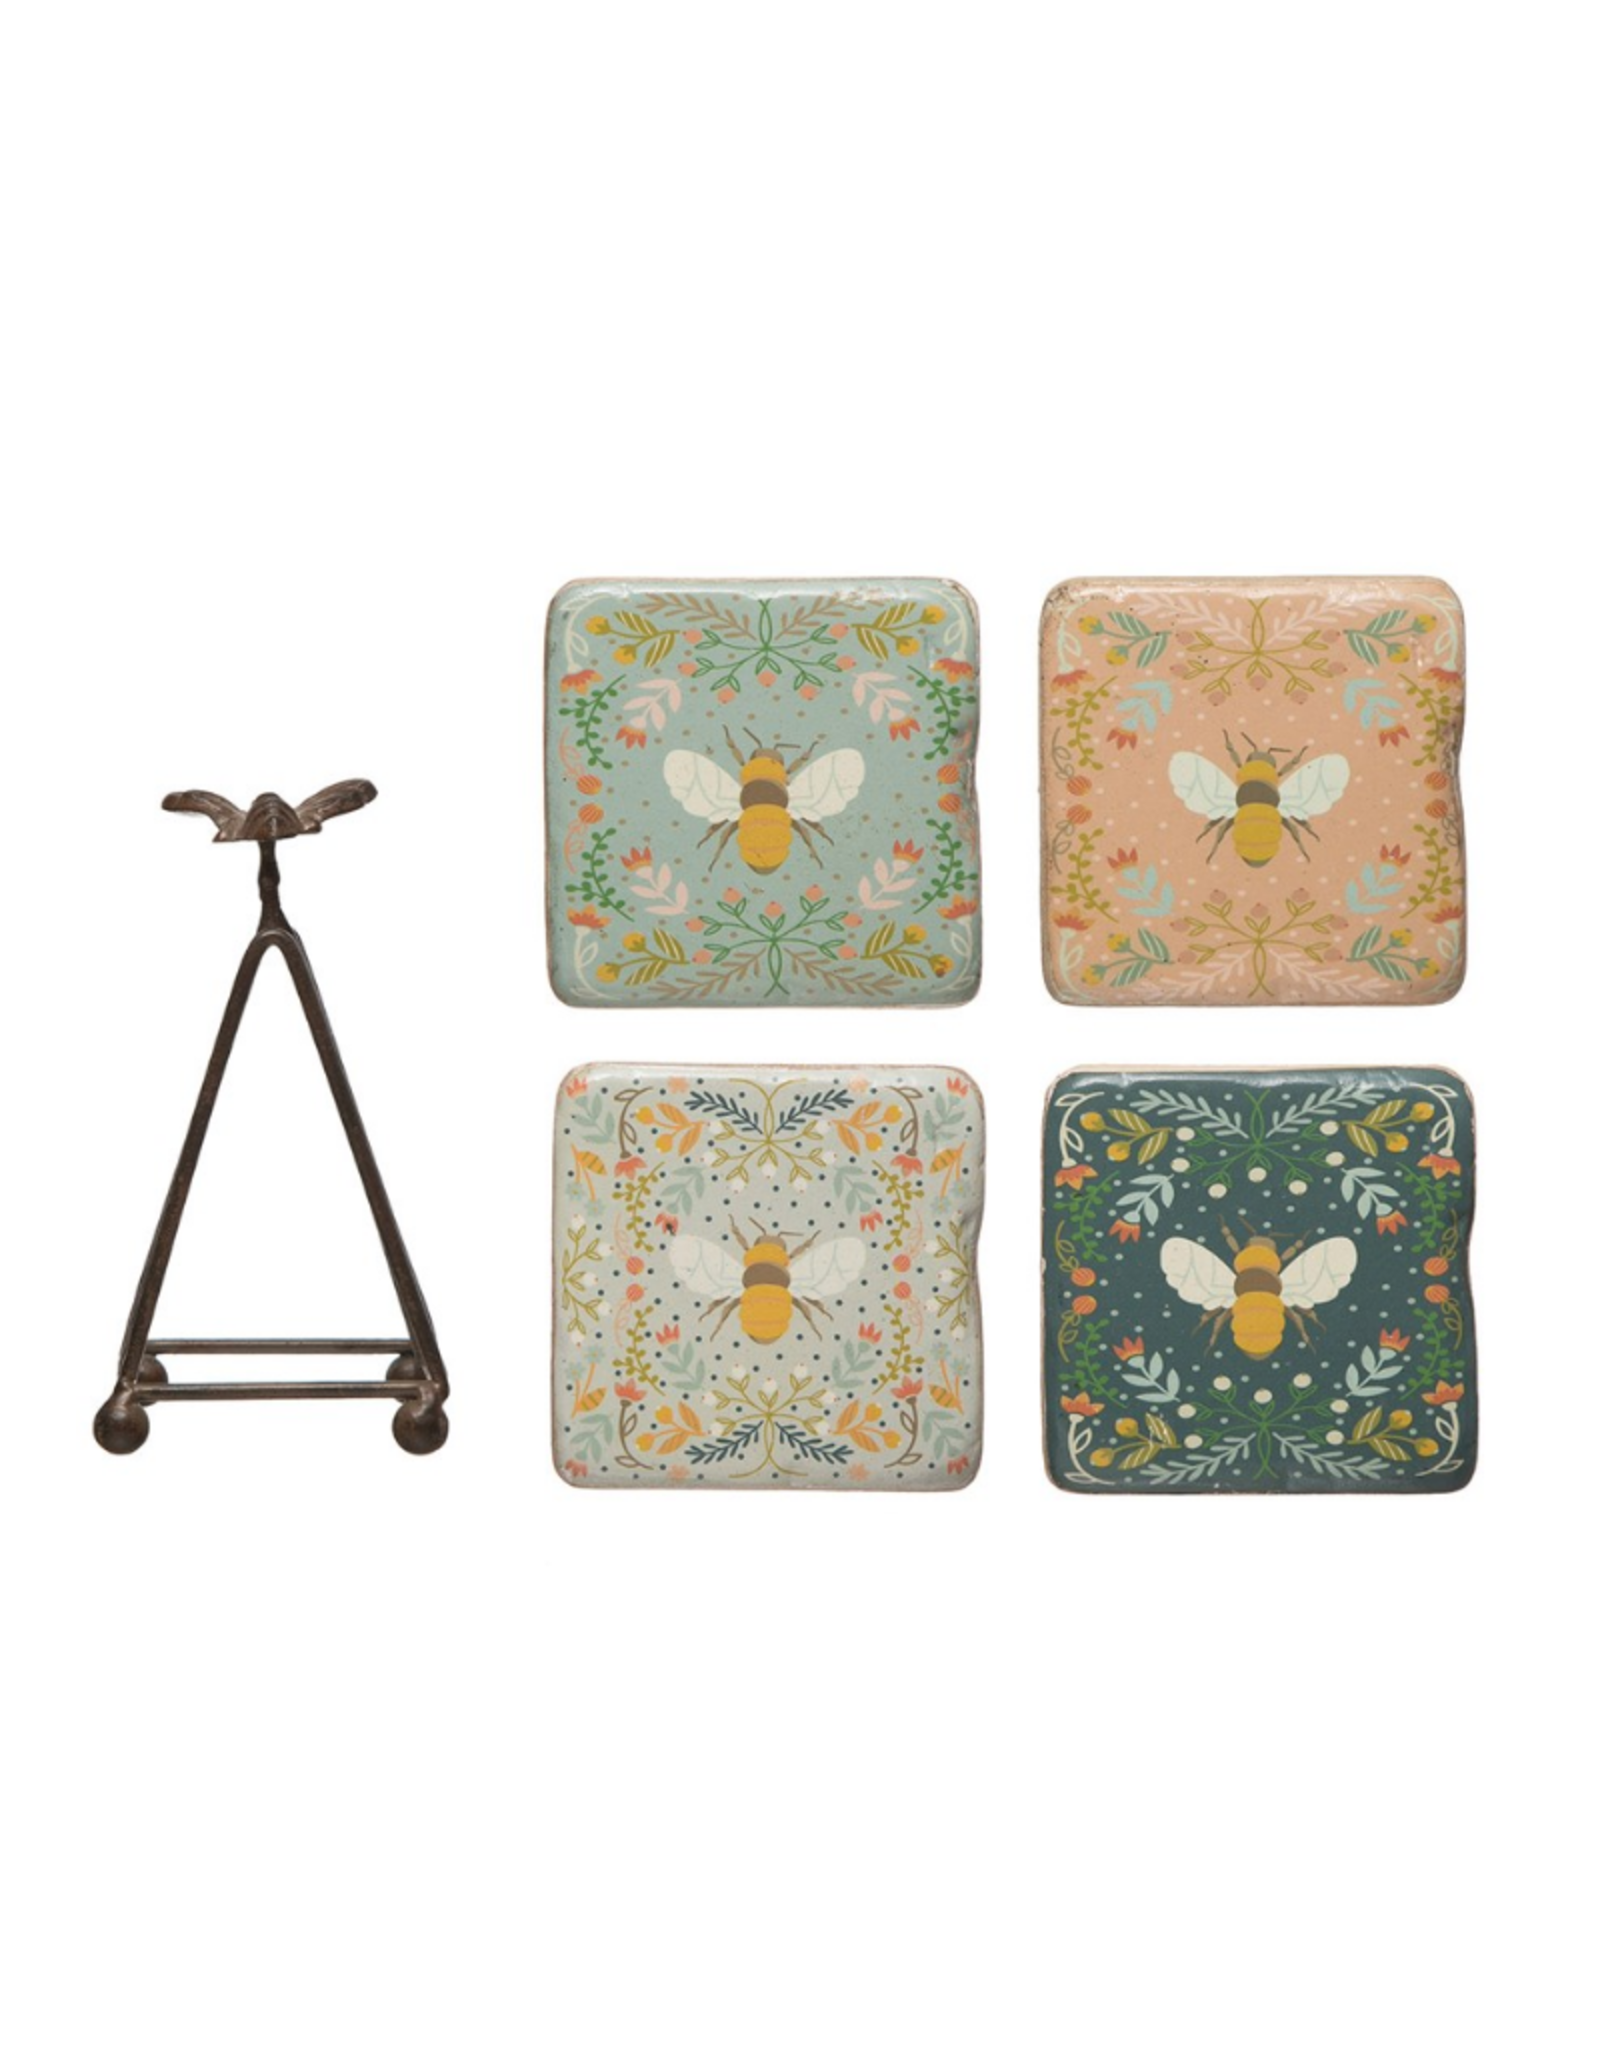 """COASTERS-BEES ON PRINT BACKGROUND W/EASEL T, 3-1/2"""" x 5-1/4""""H"""